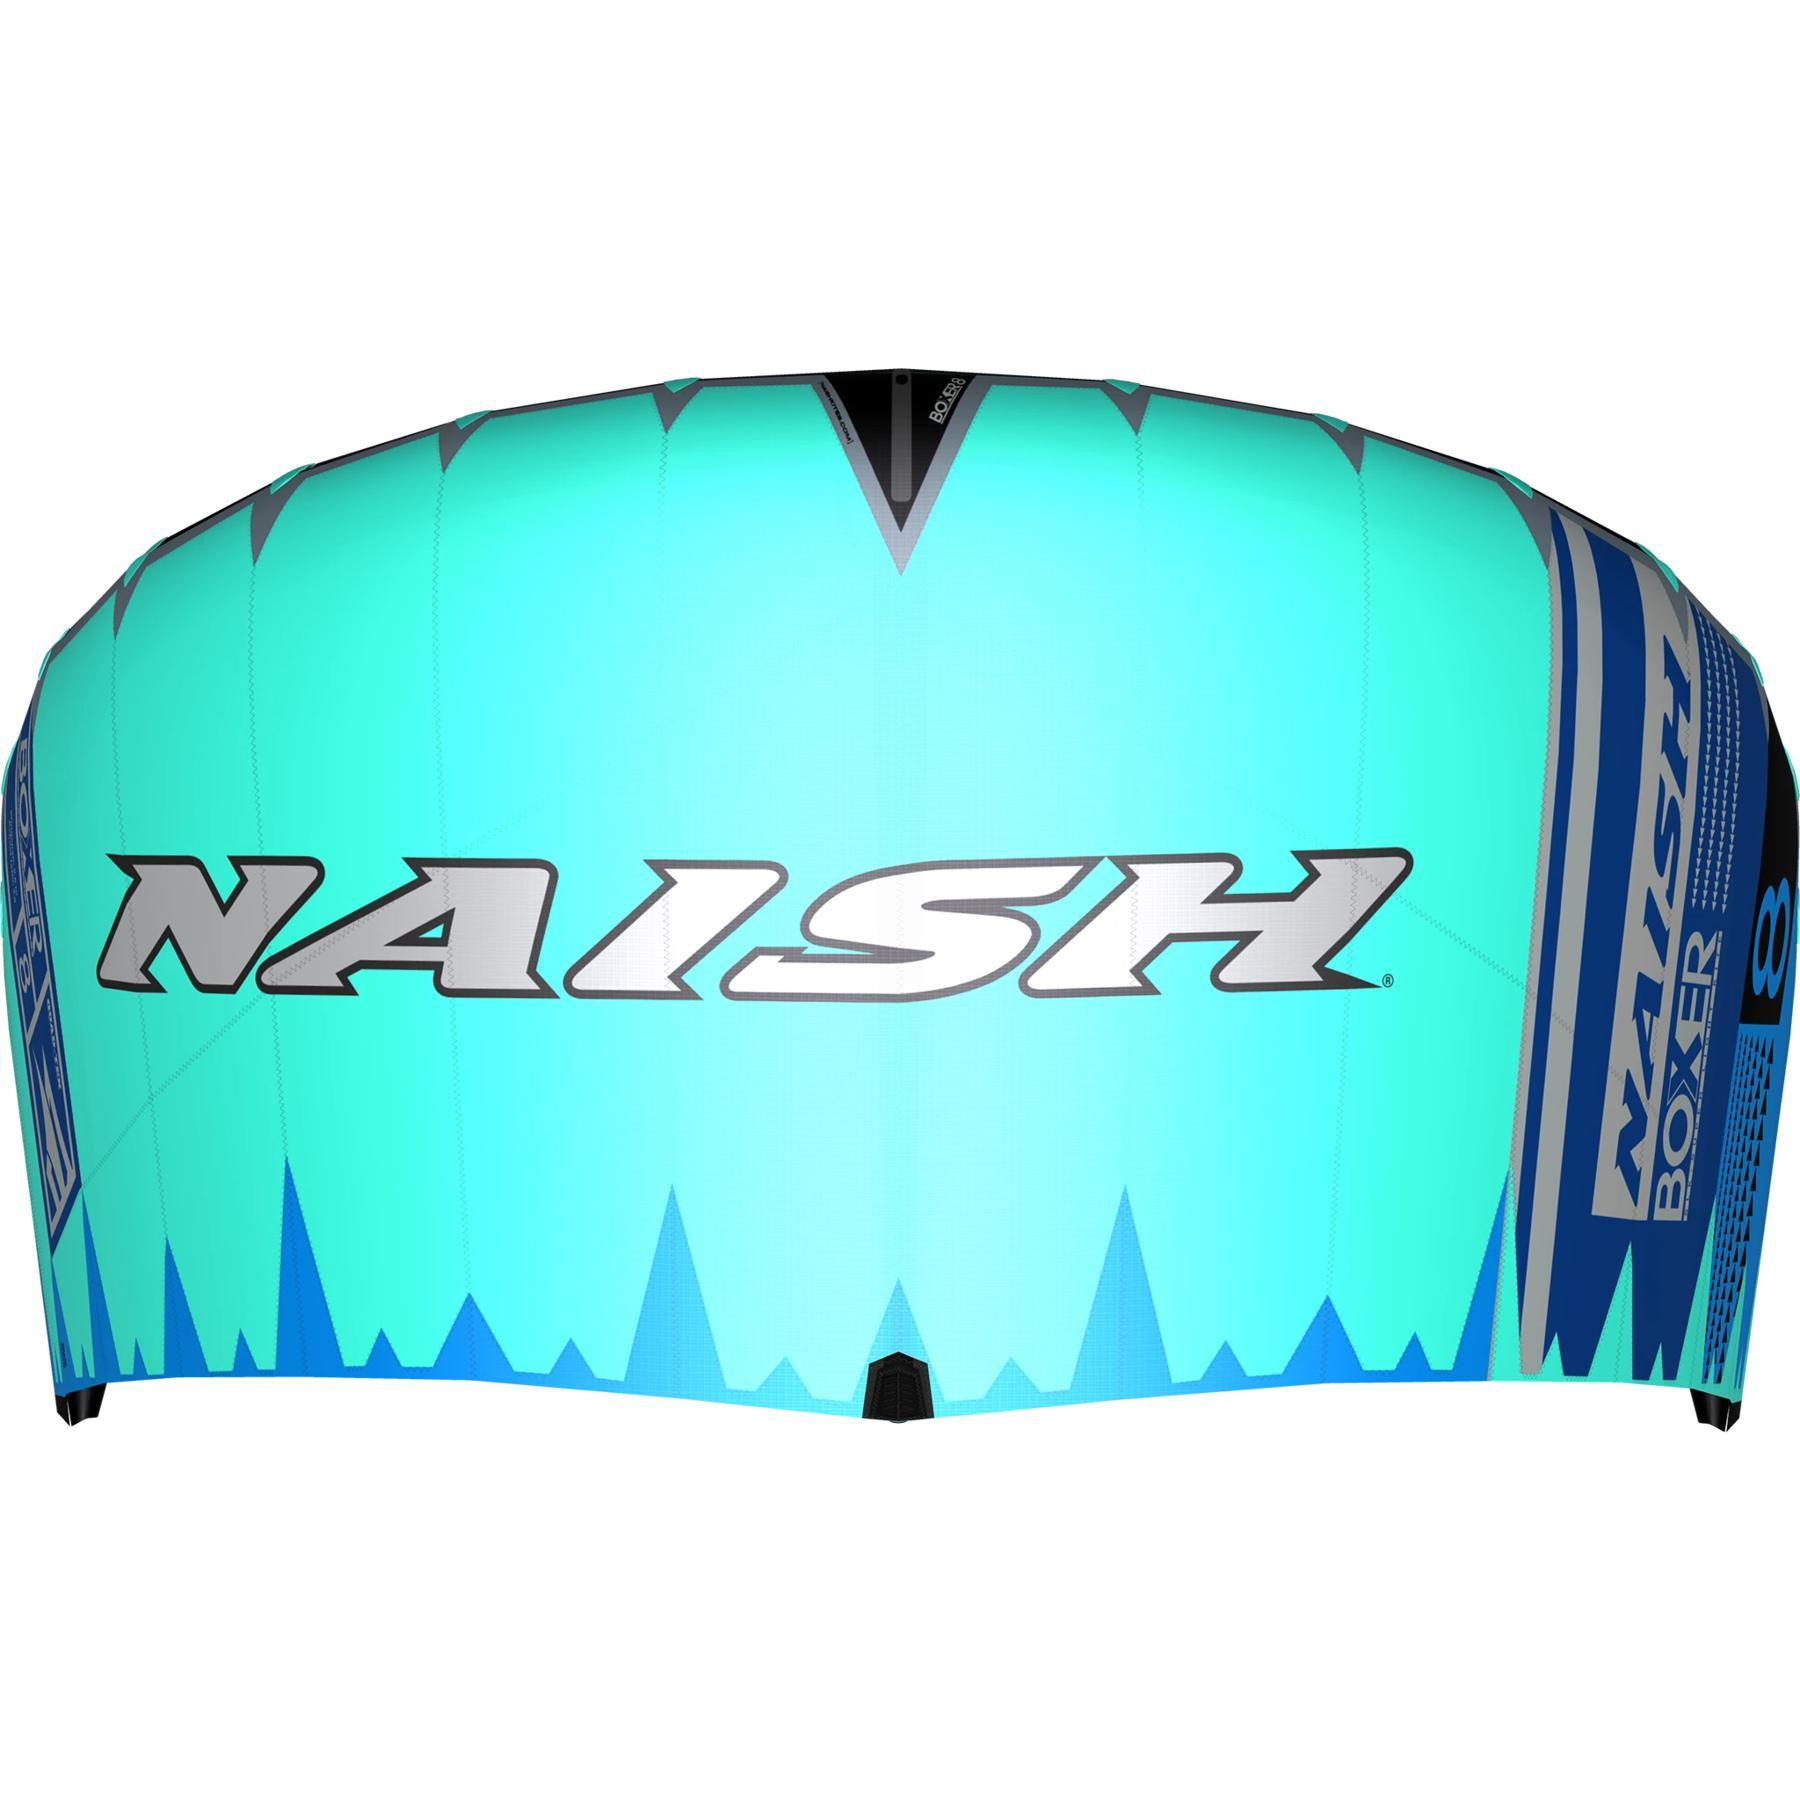 Naish S25 Boxer Kiteboarding Kite-Big Winds